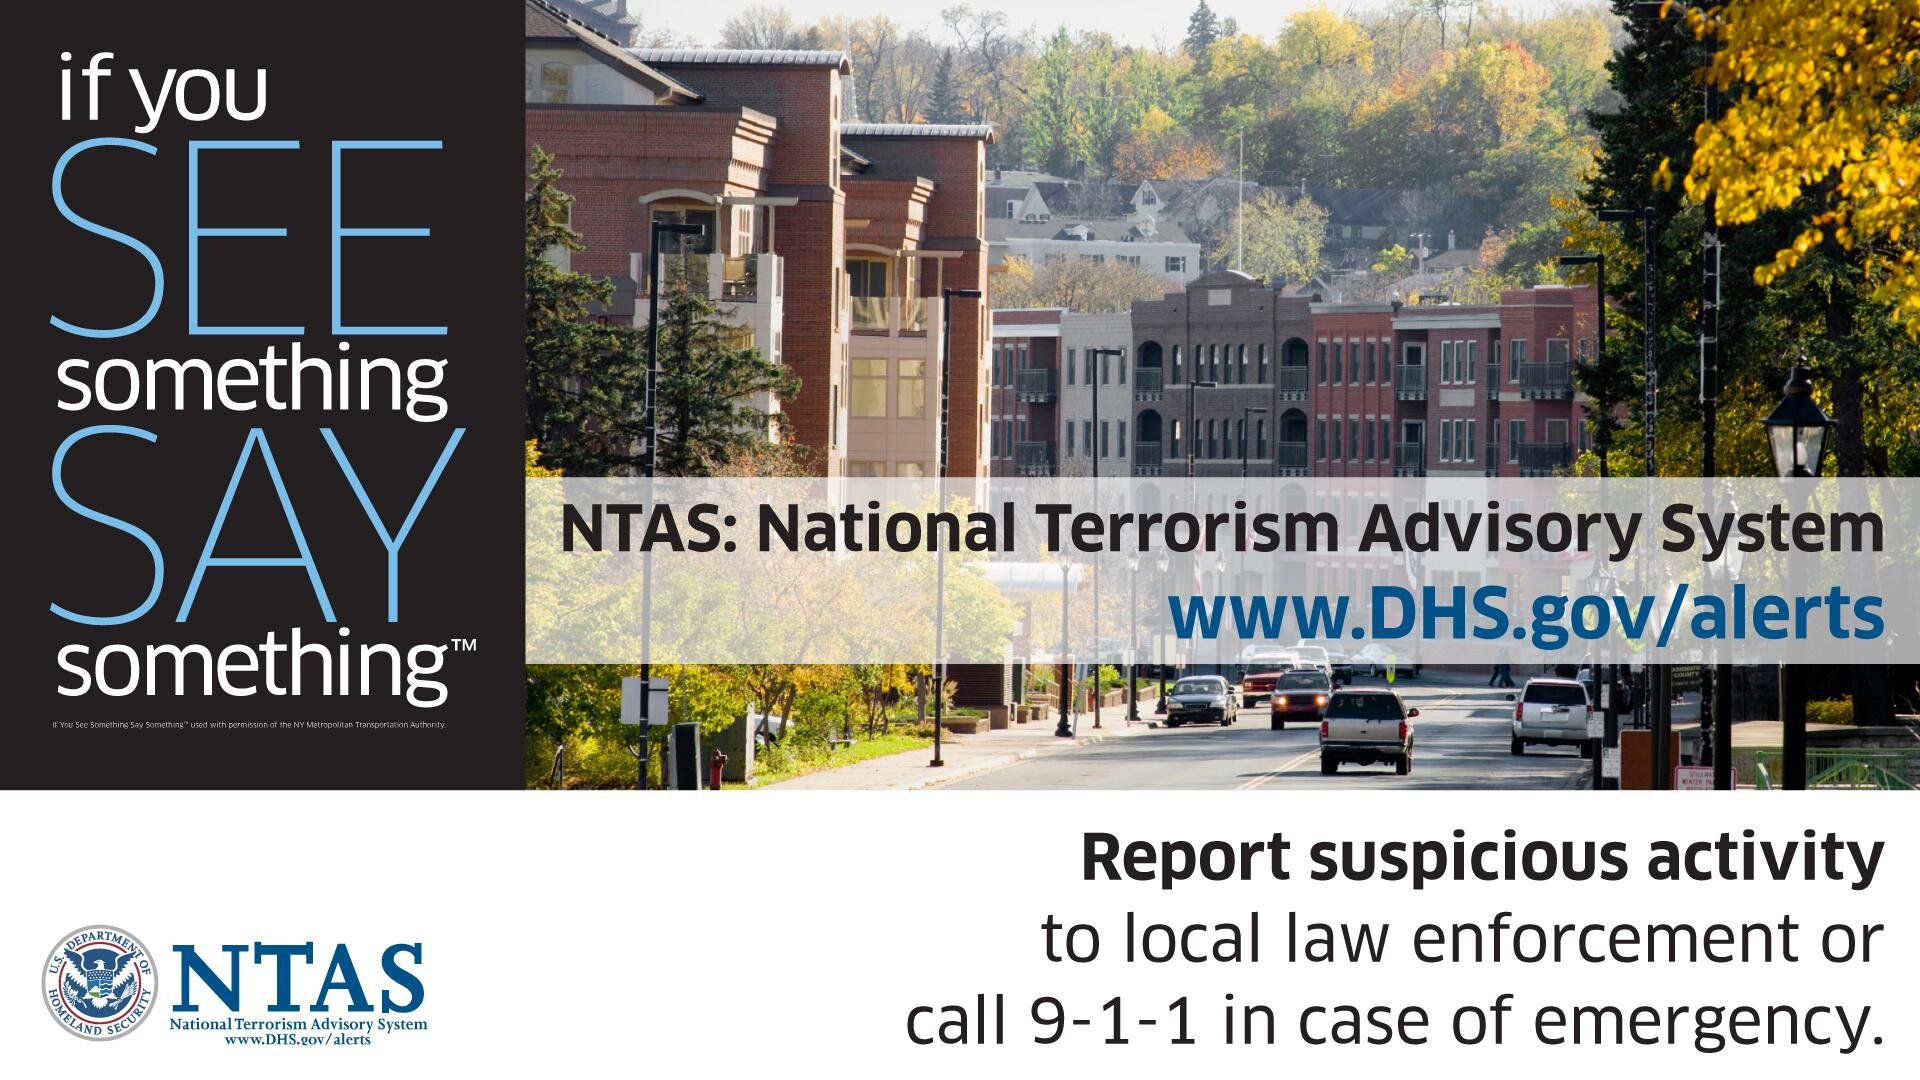 the national terrorism advisory system The system was replaced on april 27,2011 with a new system called the national terrorism advisory system, the system was created by homeland security presidential directive 3 on march 11,2002, in response to the september 11 attacks.